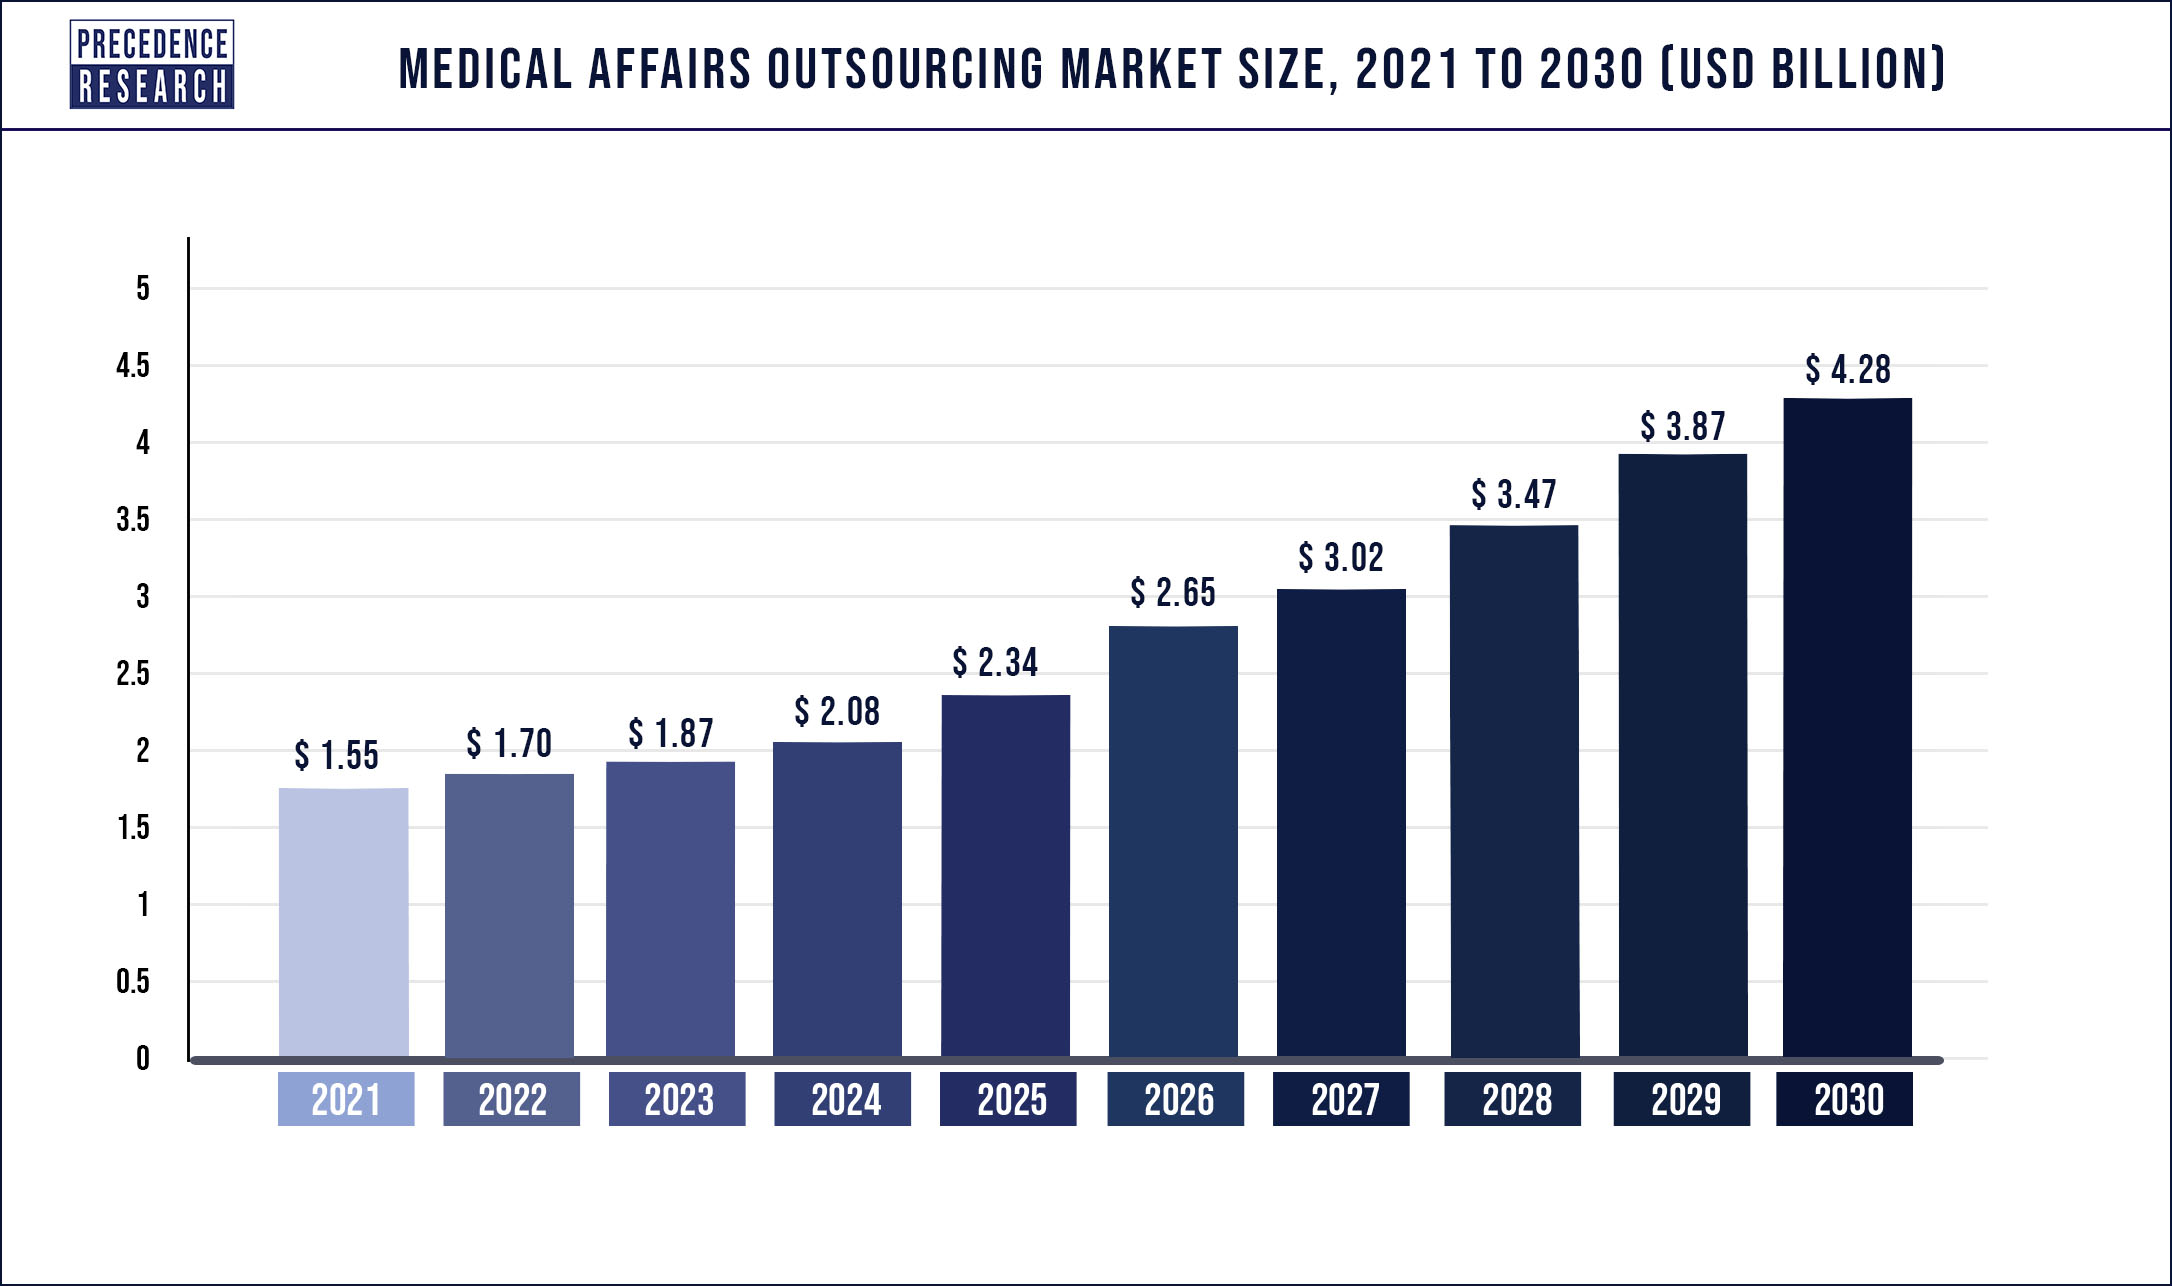 Medical Affairs Outsourcing Market Size 2021 to 2030